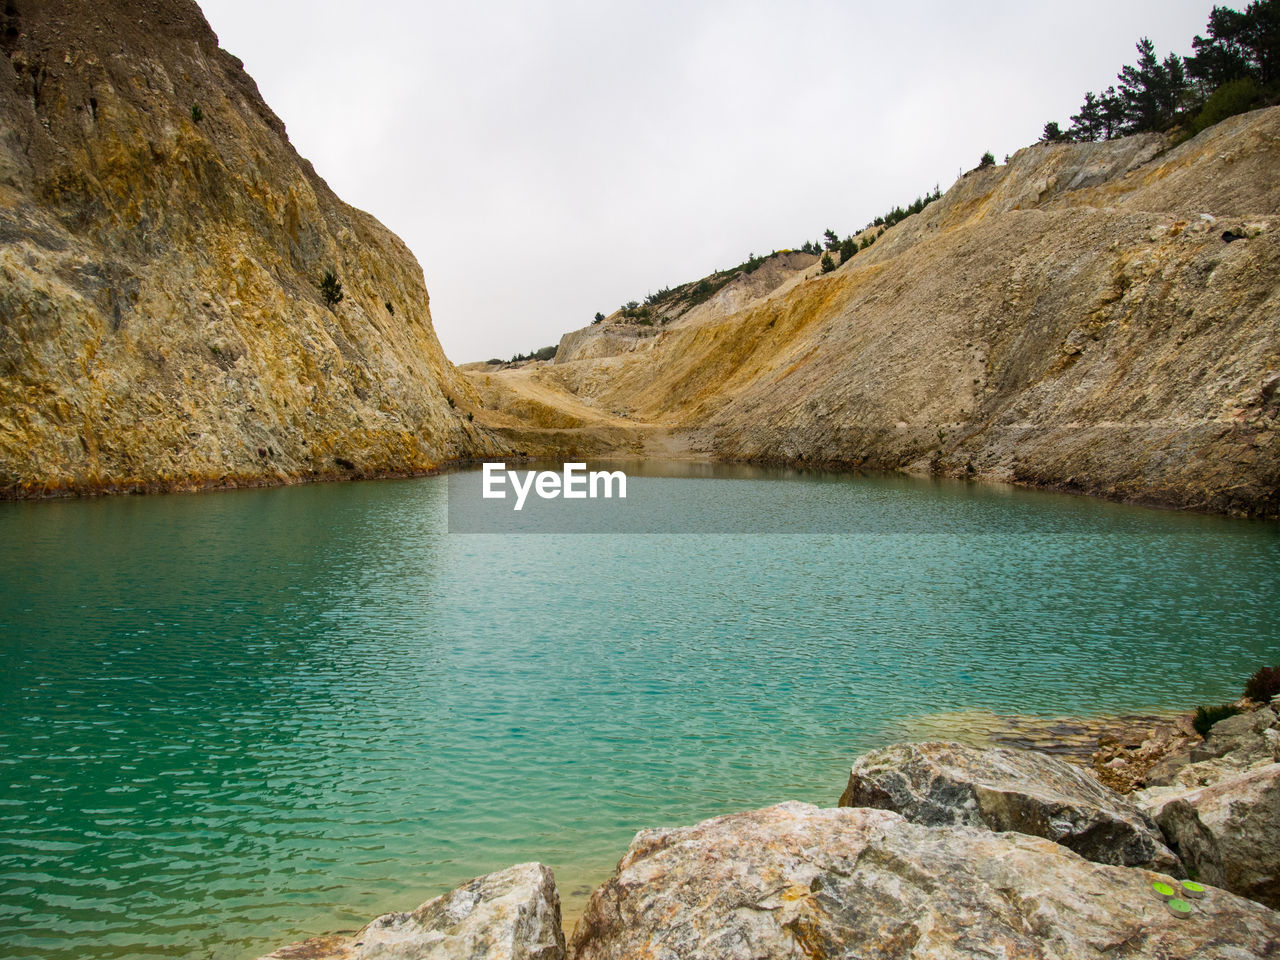 water, rock, rock - object, scenics - nature, solid, tranquility, tranquil scene, beauty in nature, sky, no people, mountain, nature, day, lake, non-urban scene, rock formation, idyllic, remote, outdoors, turquoise colored, formation